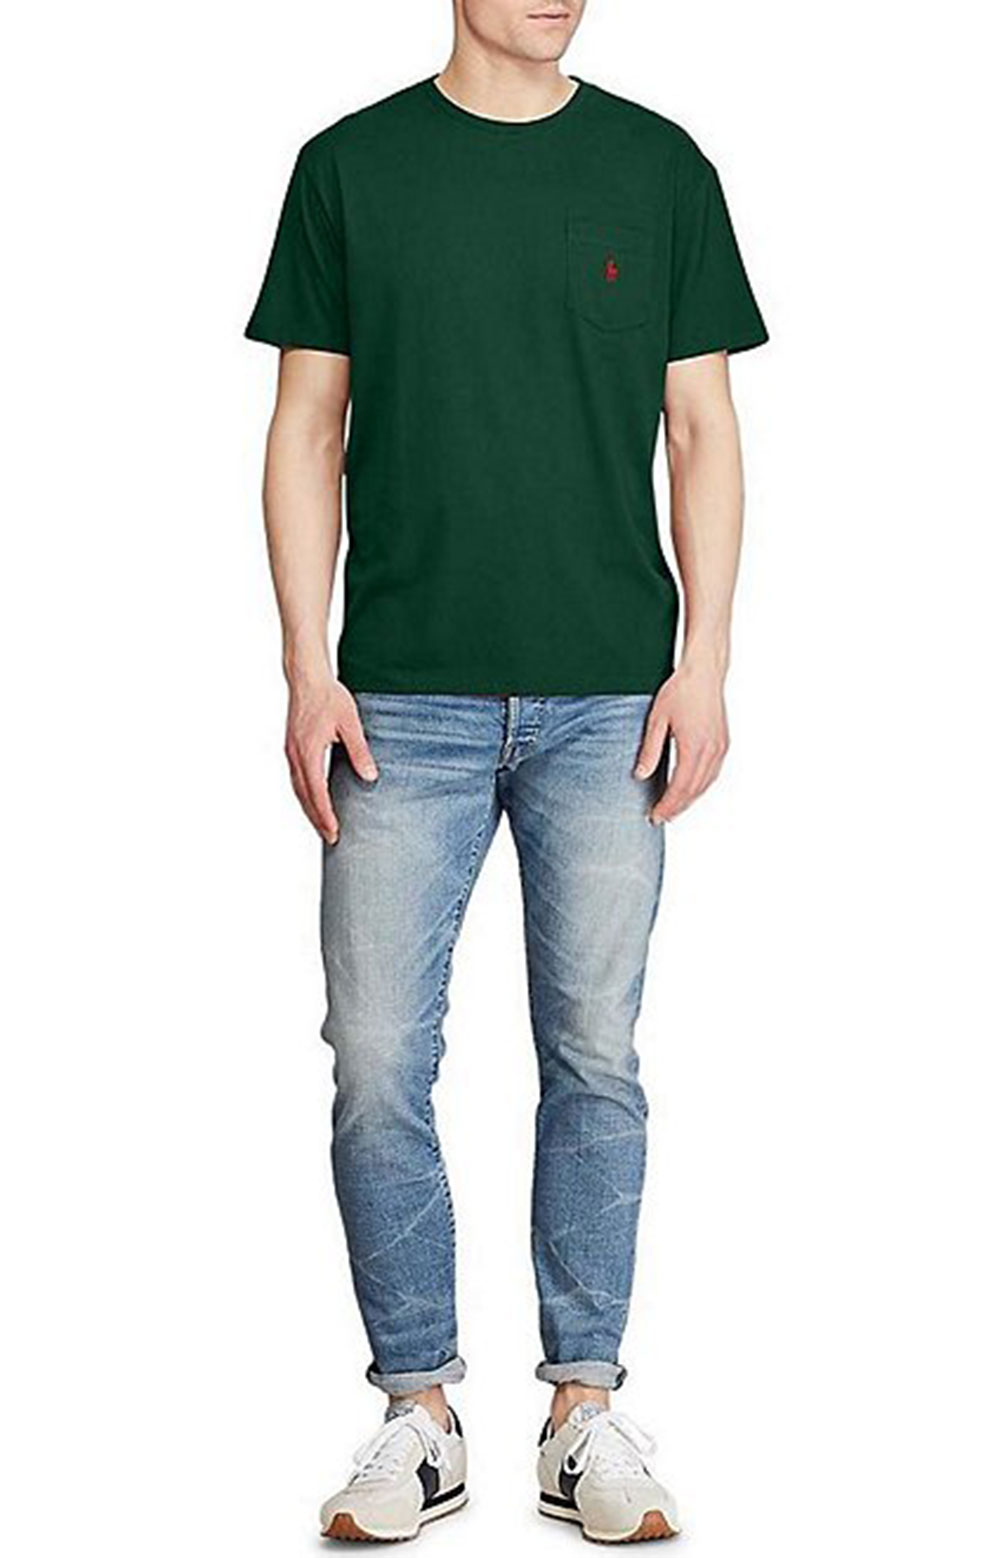 Classic Fit Cotton T-Shirt - College Green  3